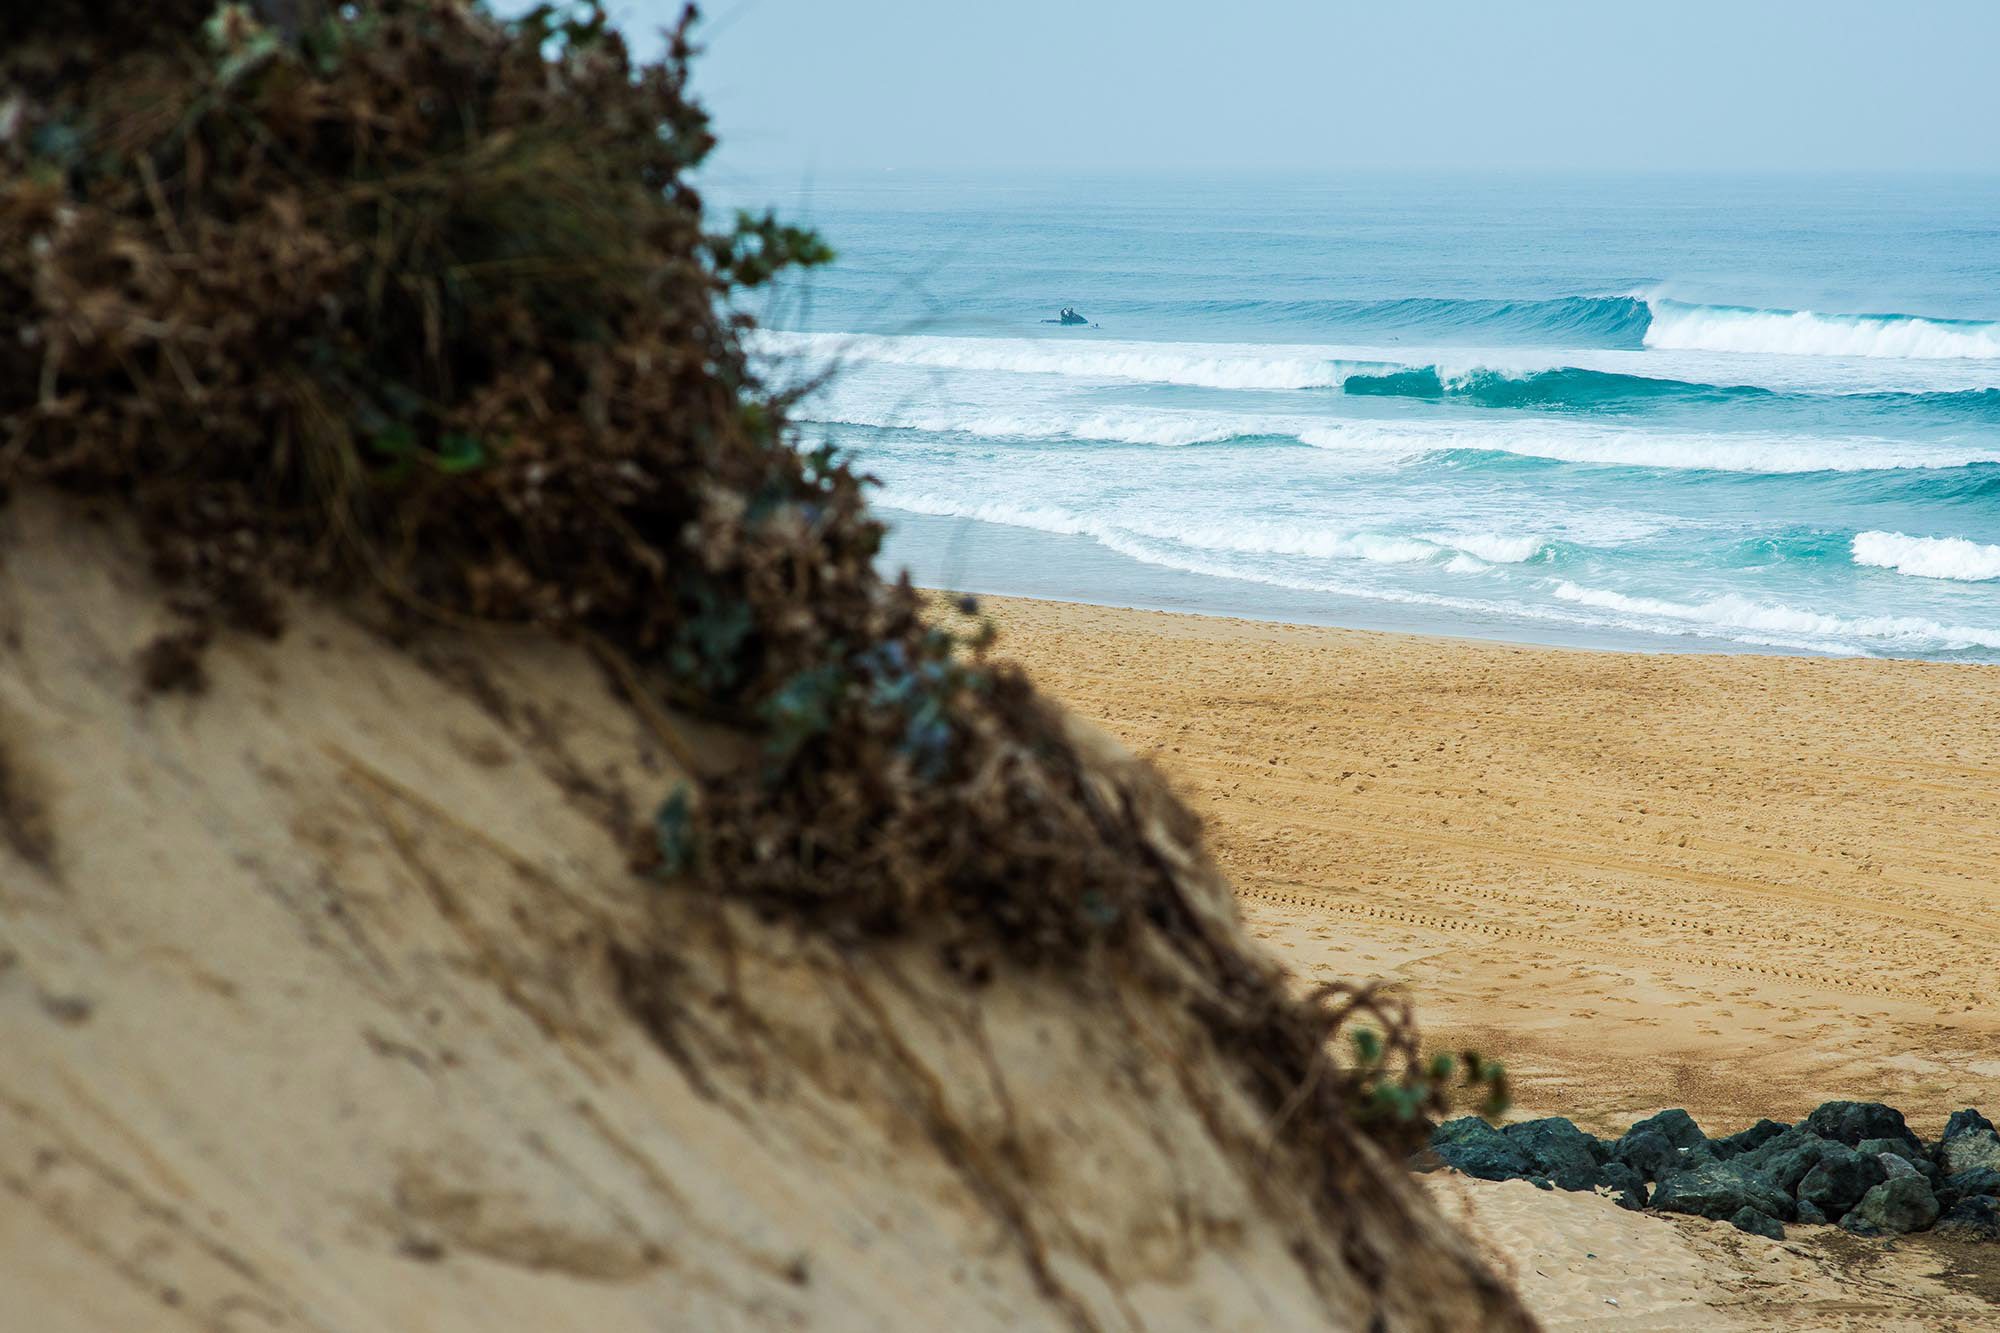 The result is the surfers' paradise of South West France. Where forest